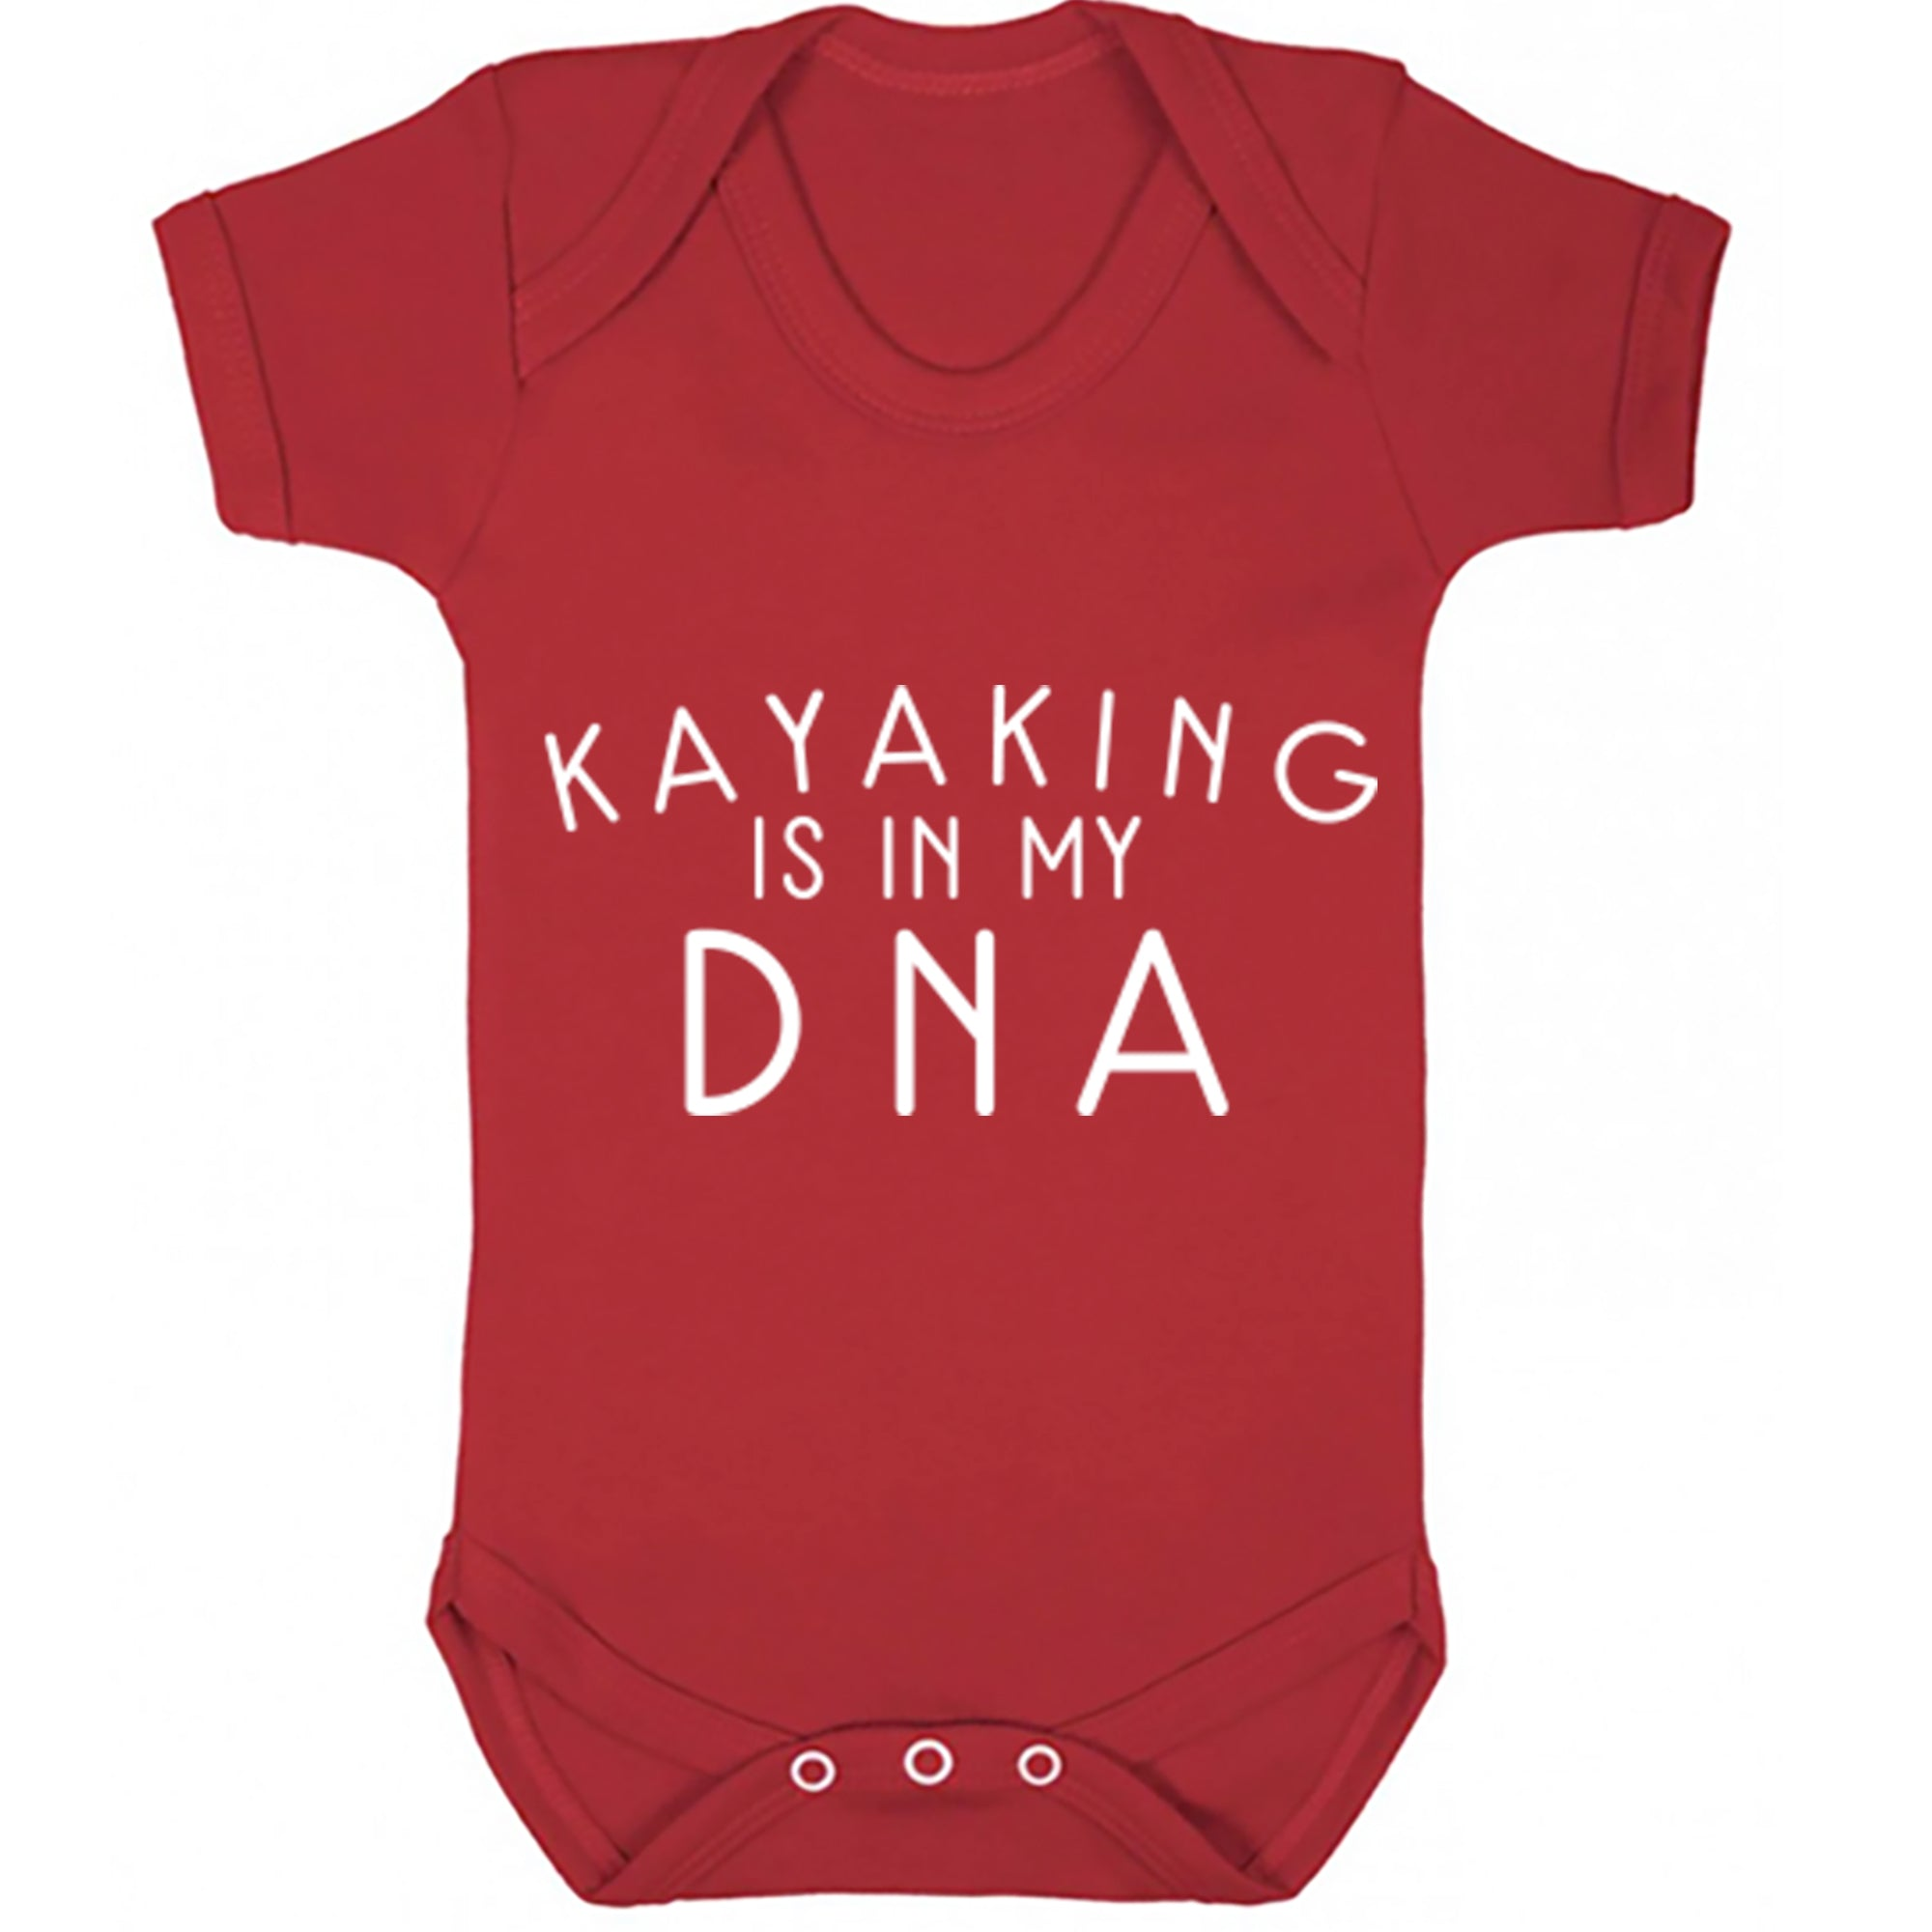 Kayaking Is In My DNA Baby Vest S0698 - Illustrated Identity Ltd.